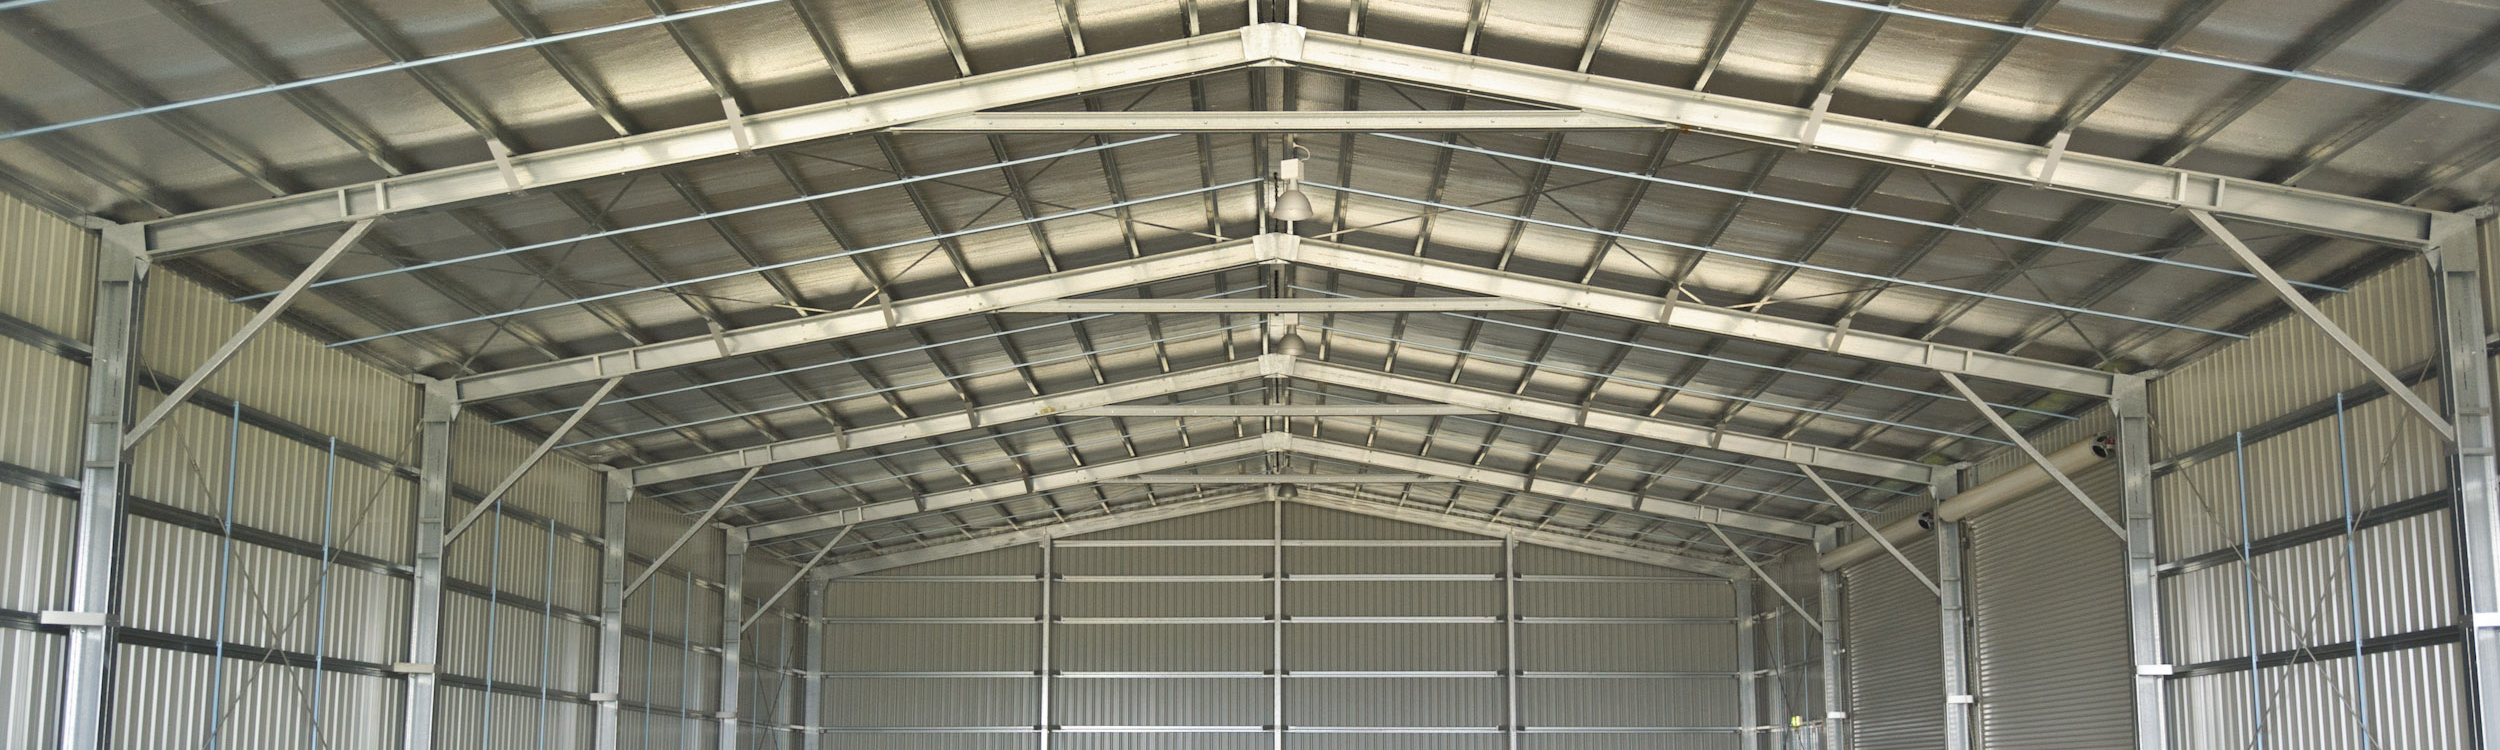 Why Us?   Shed Boss - Quality Sheds and Garages